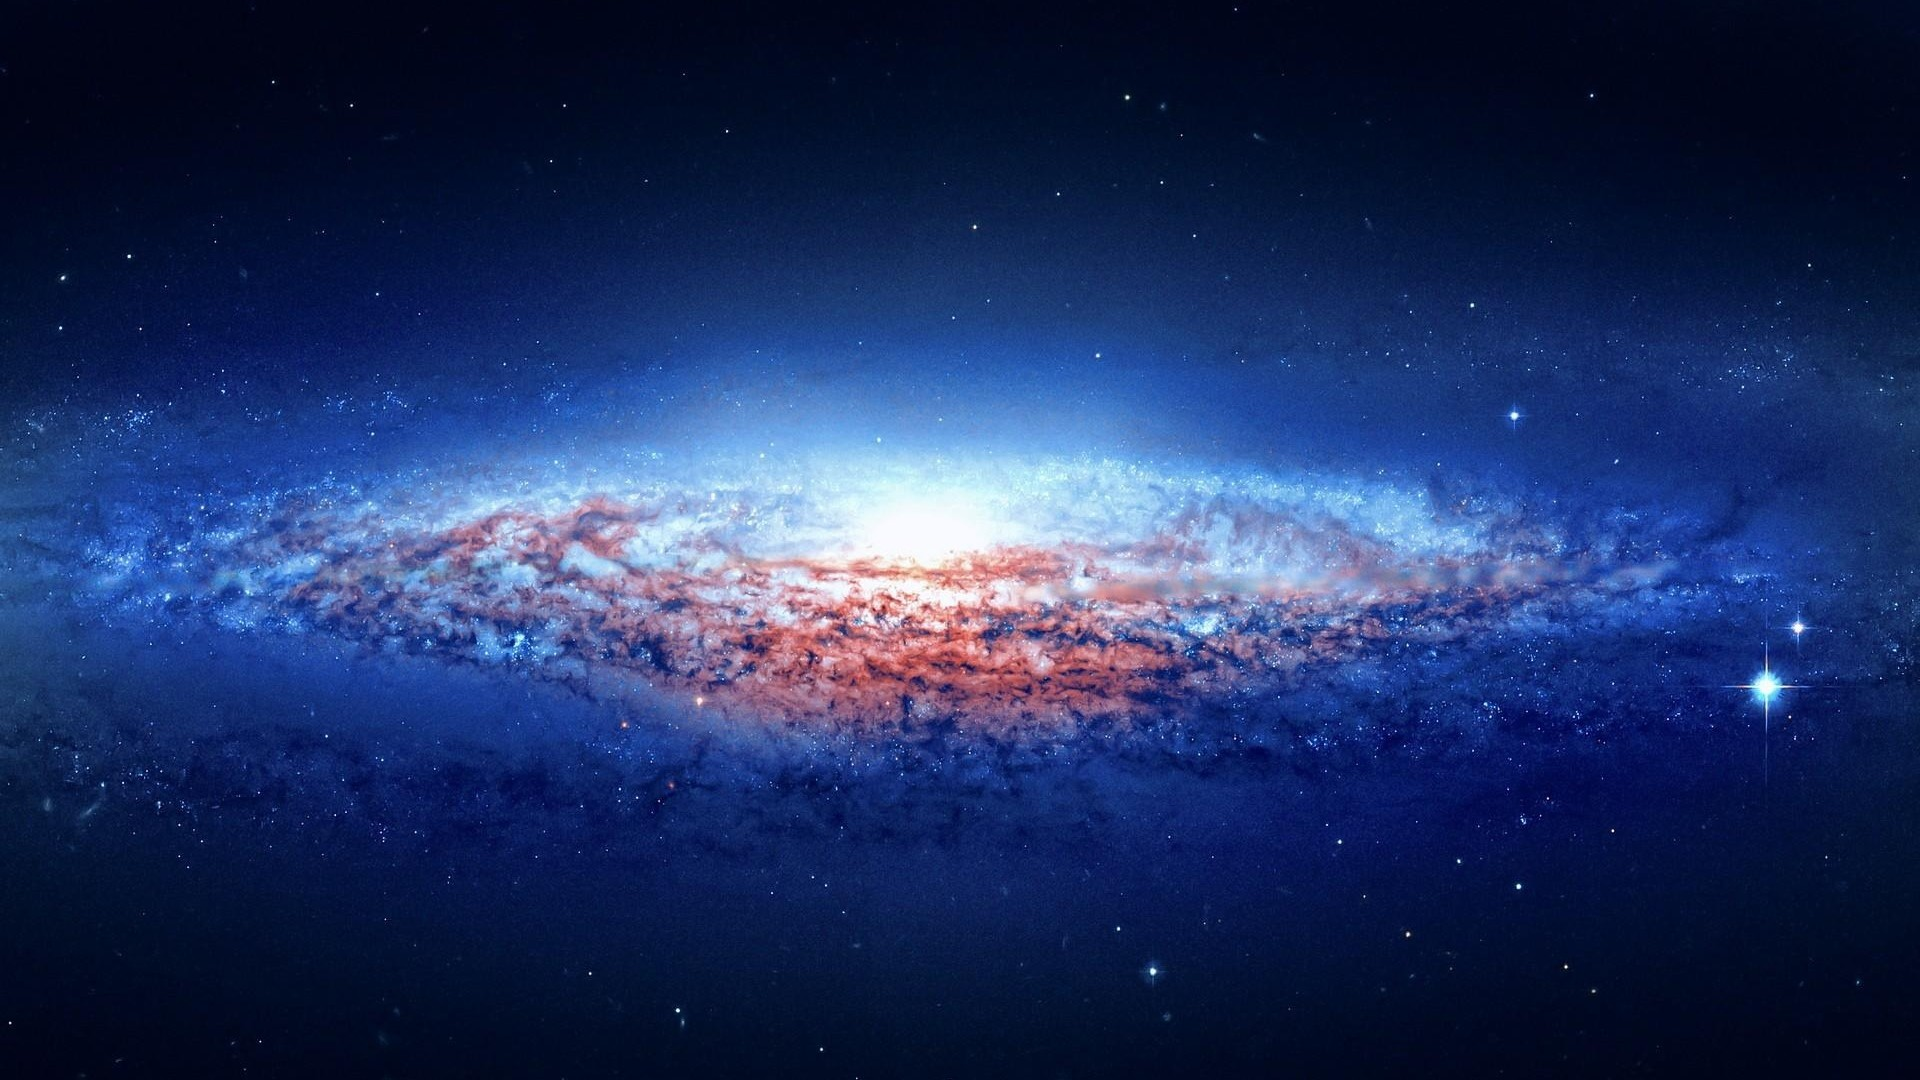 Universe Wallpaper 1080p Hd: Galaxy HD Wallpapers 1080p (75+ Images